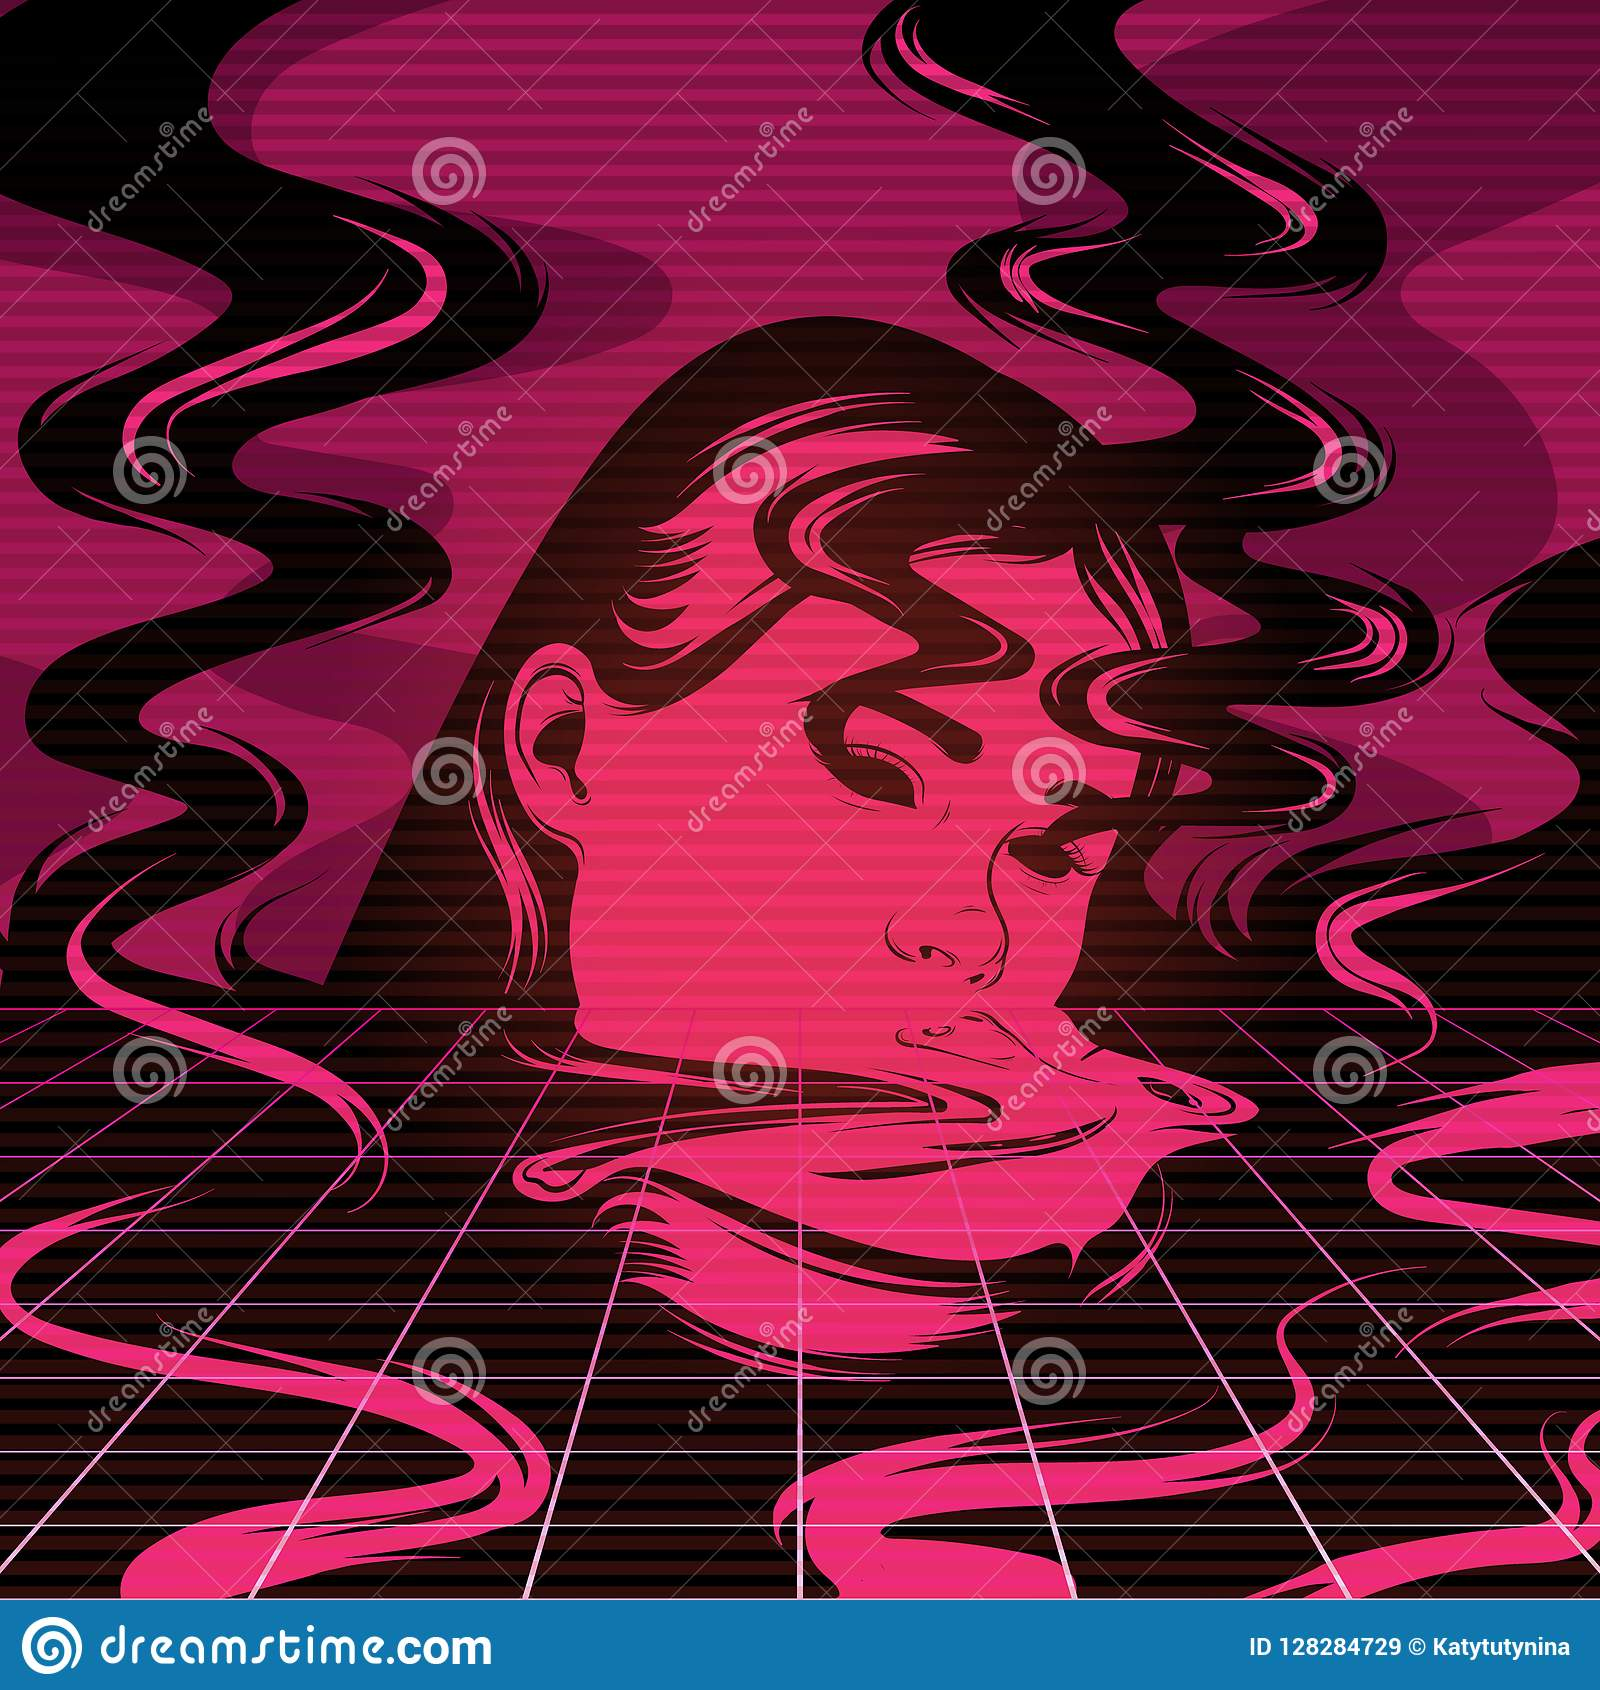 vector hand drawn illustration of melting girl with smoke stock